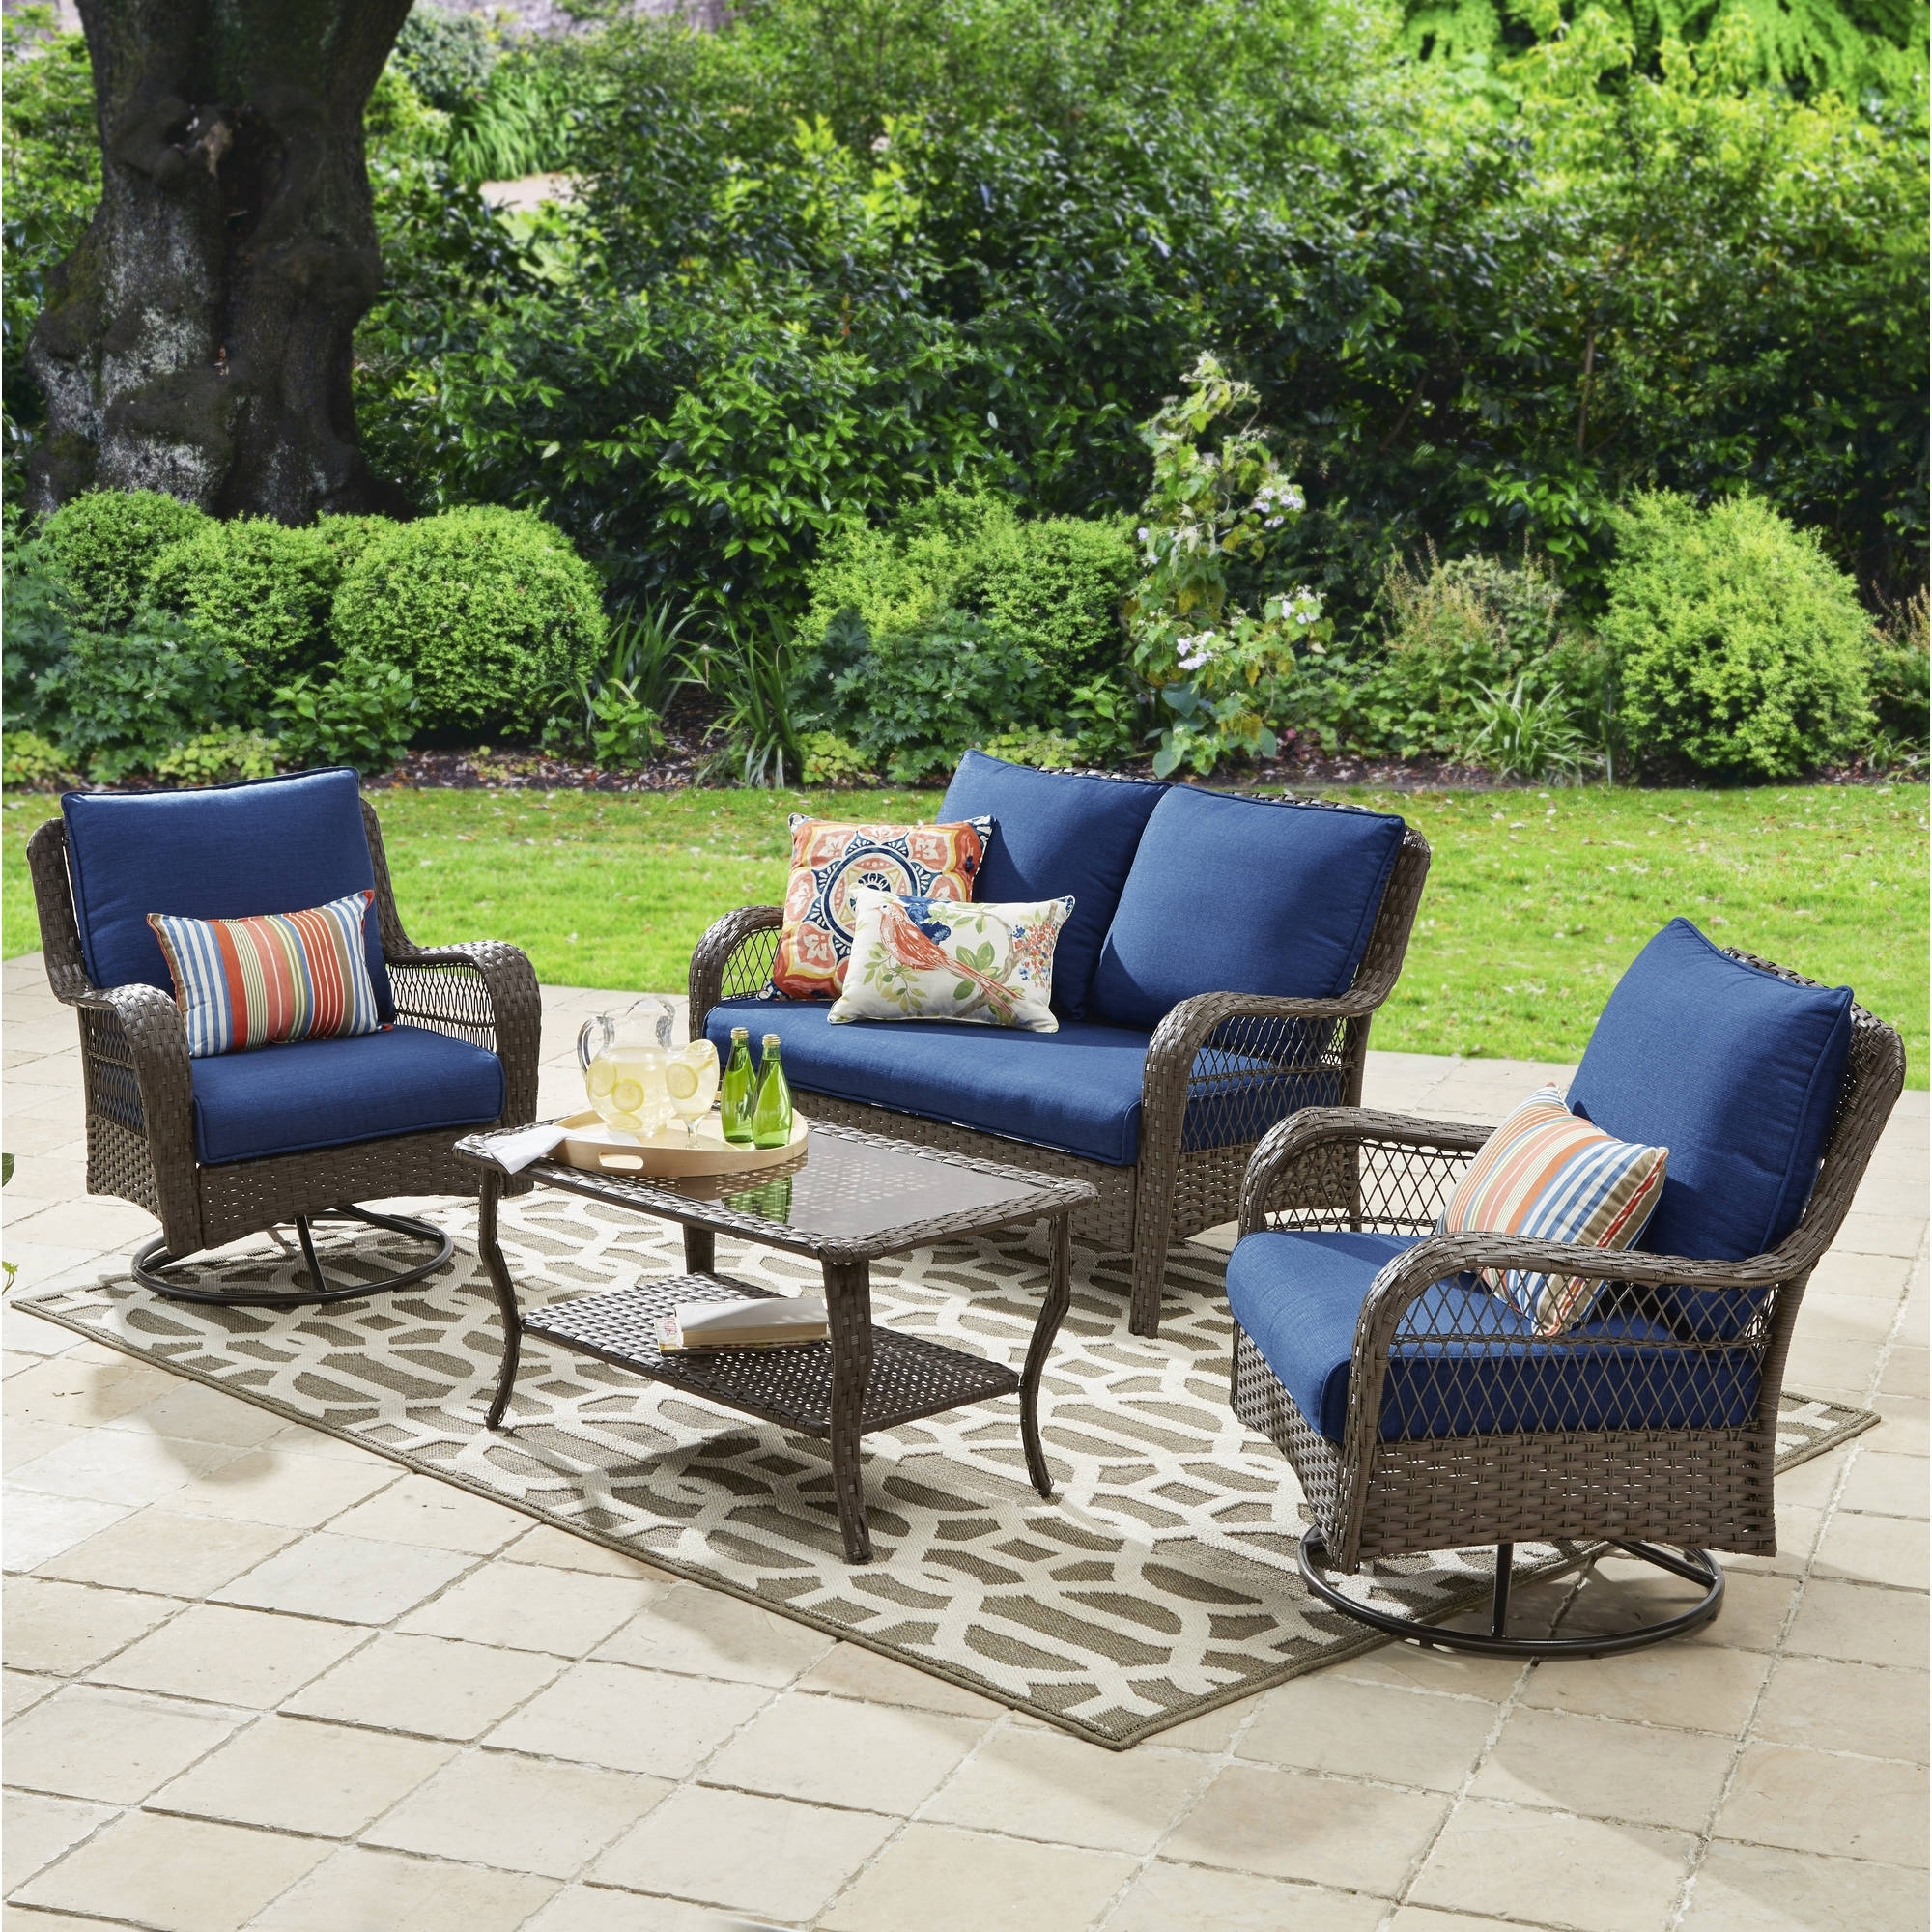 Better Homes And Gardens Colebrook 4 Piece Outdoor Conversation Set With Regard To Well Known Walmart Patio Furniture Conversation Sets (View 7 of 15)